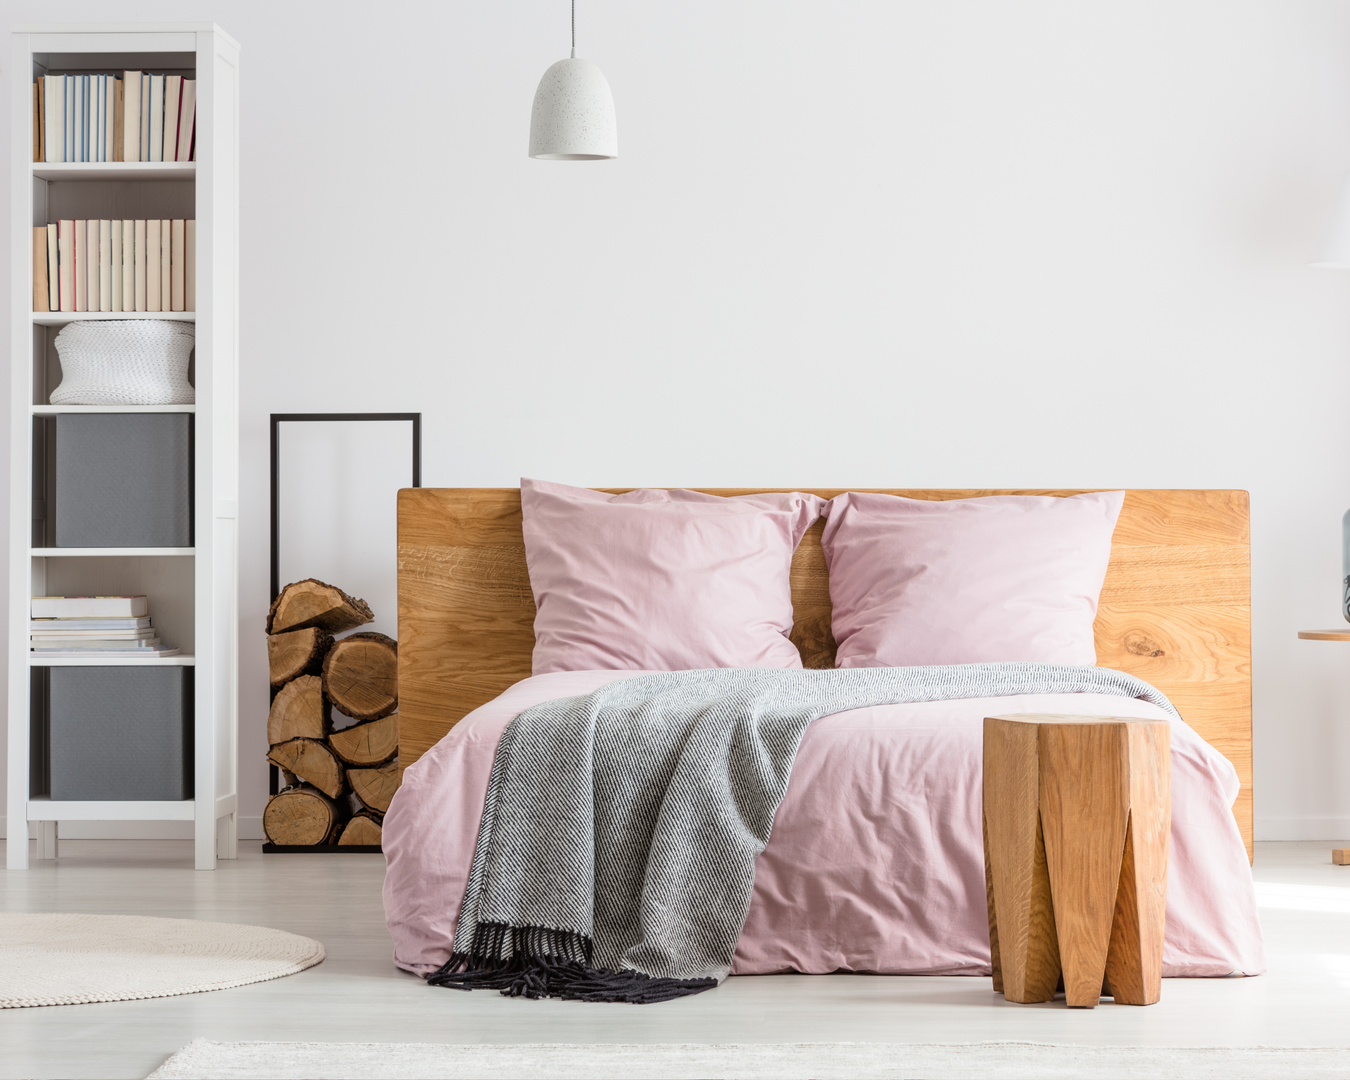 Pink bed with chopped wood and white bookshelf